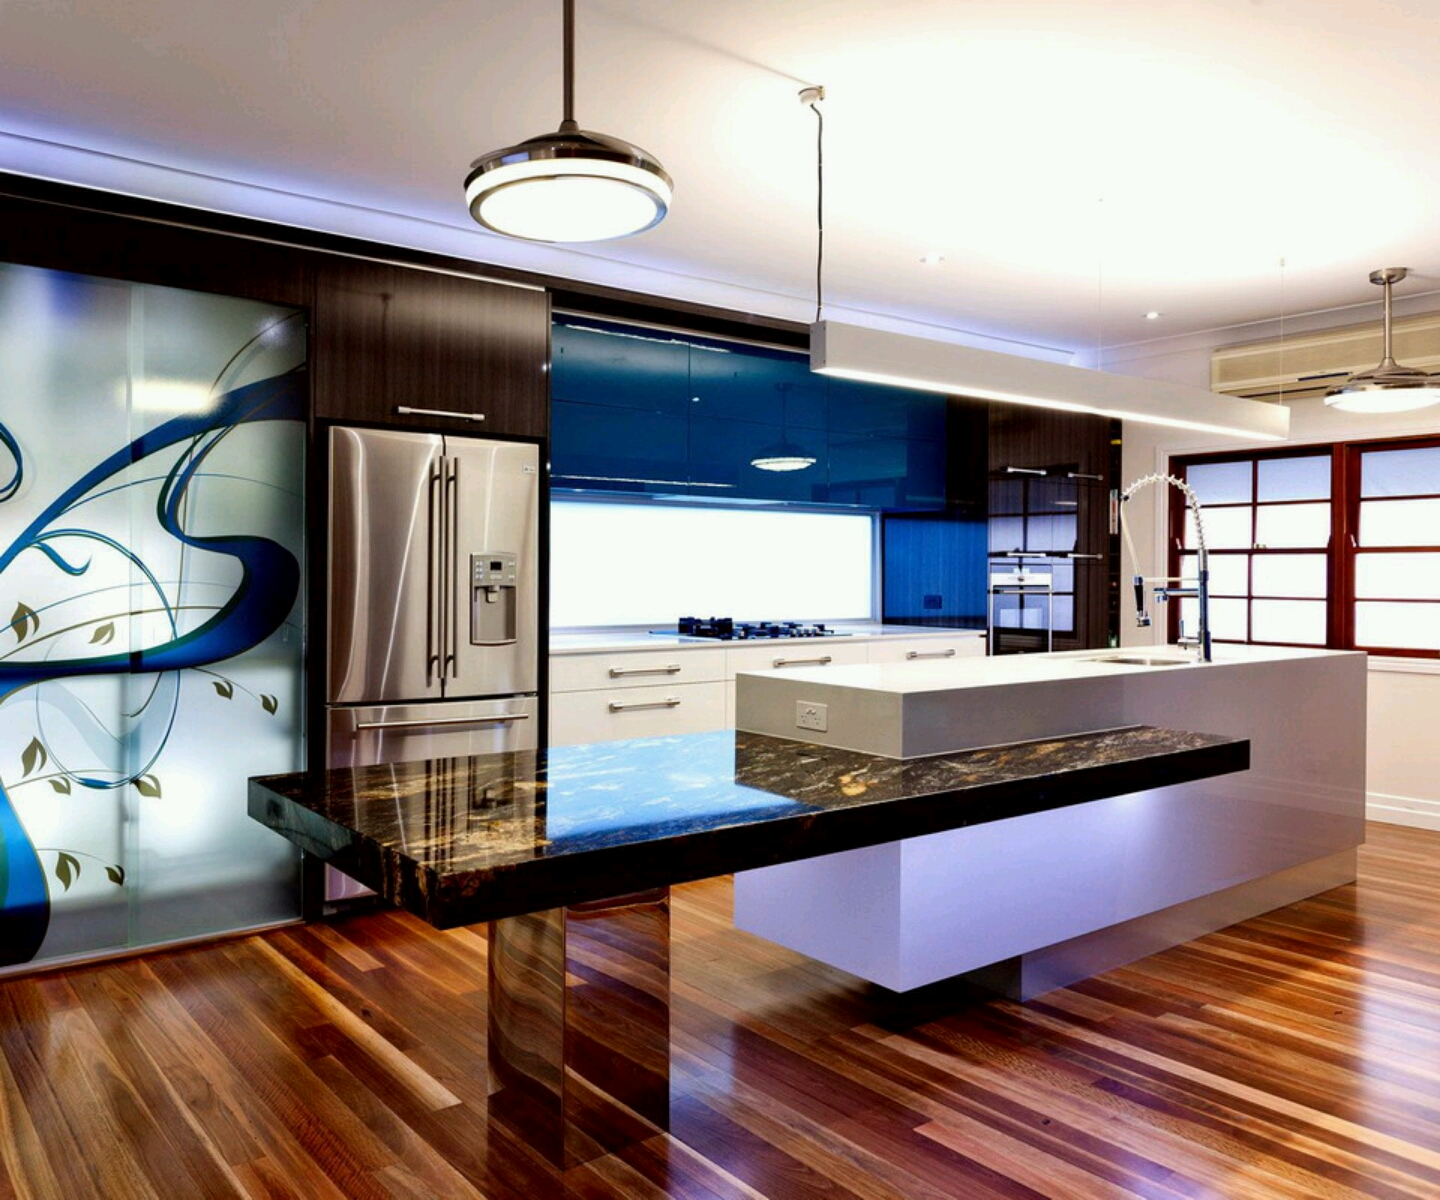 ultra modern kitchen designs ideas home designs views comments home kitchen design display